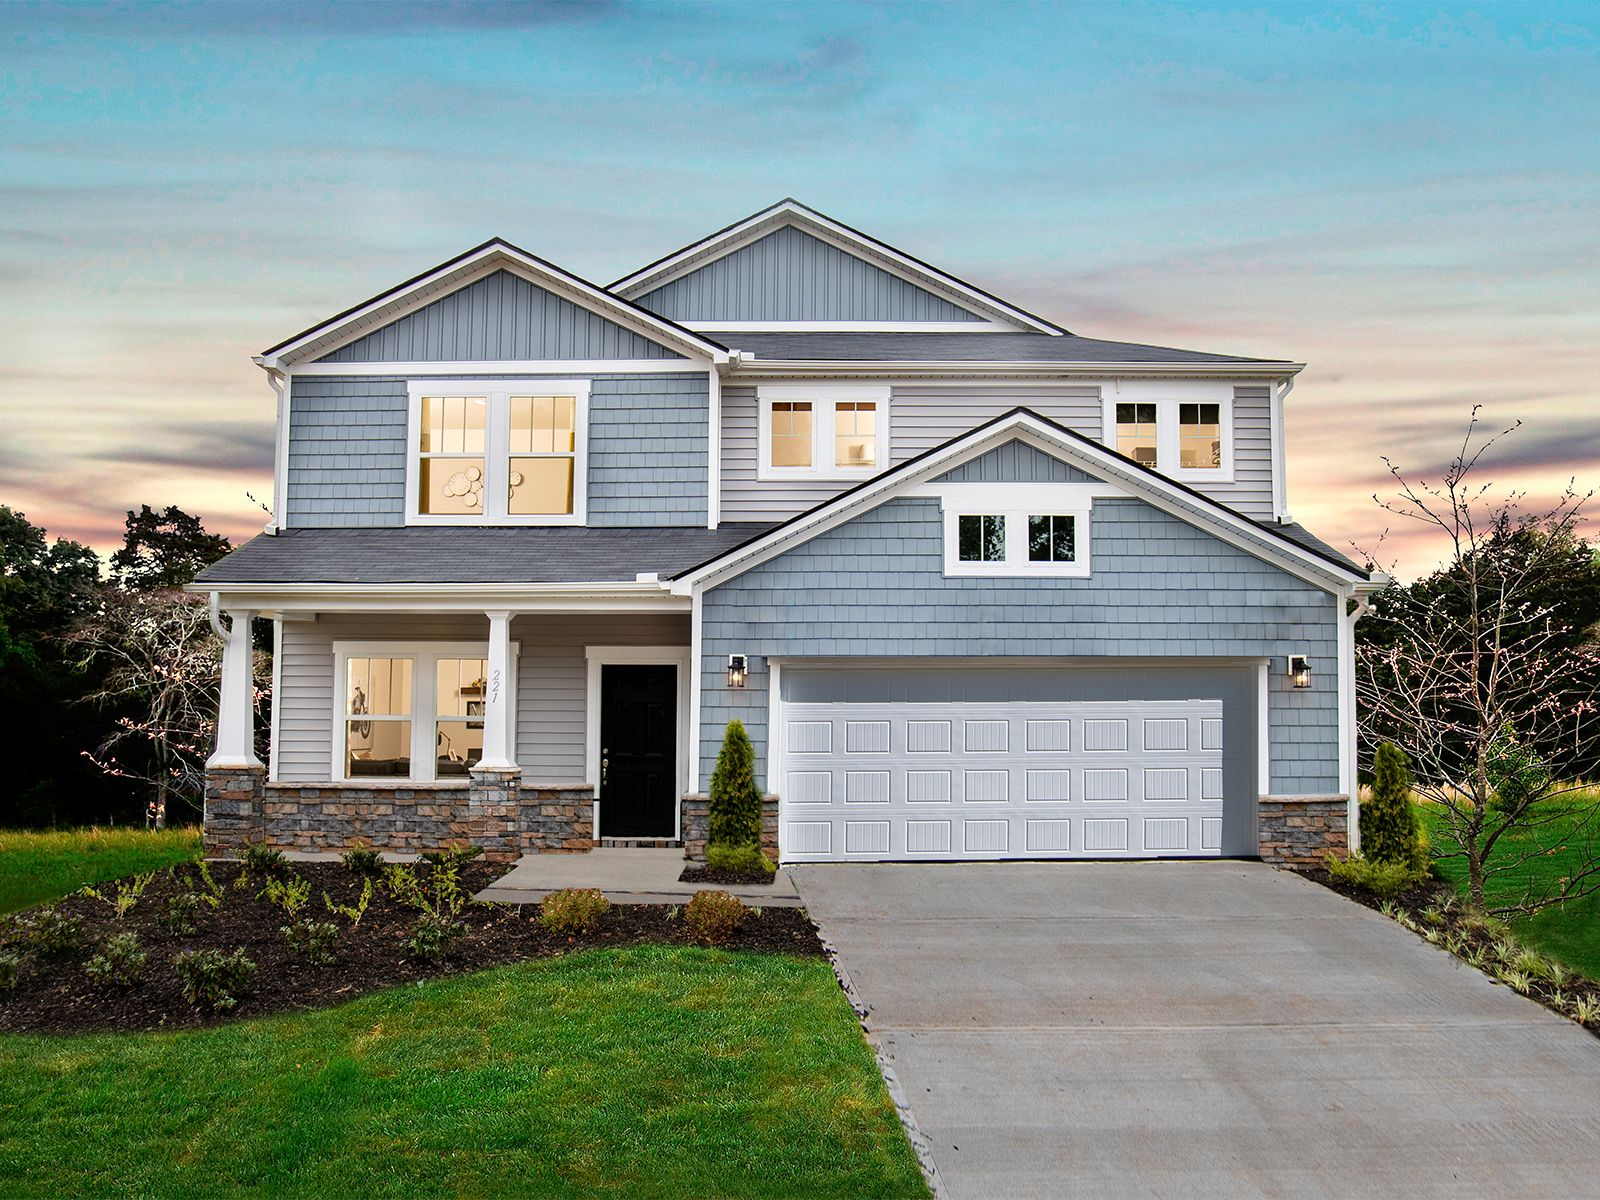 Parkview Glen offers single-family ranch and two-story homes in Anderson County.